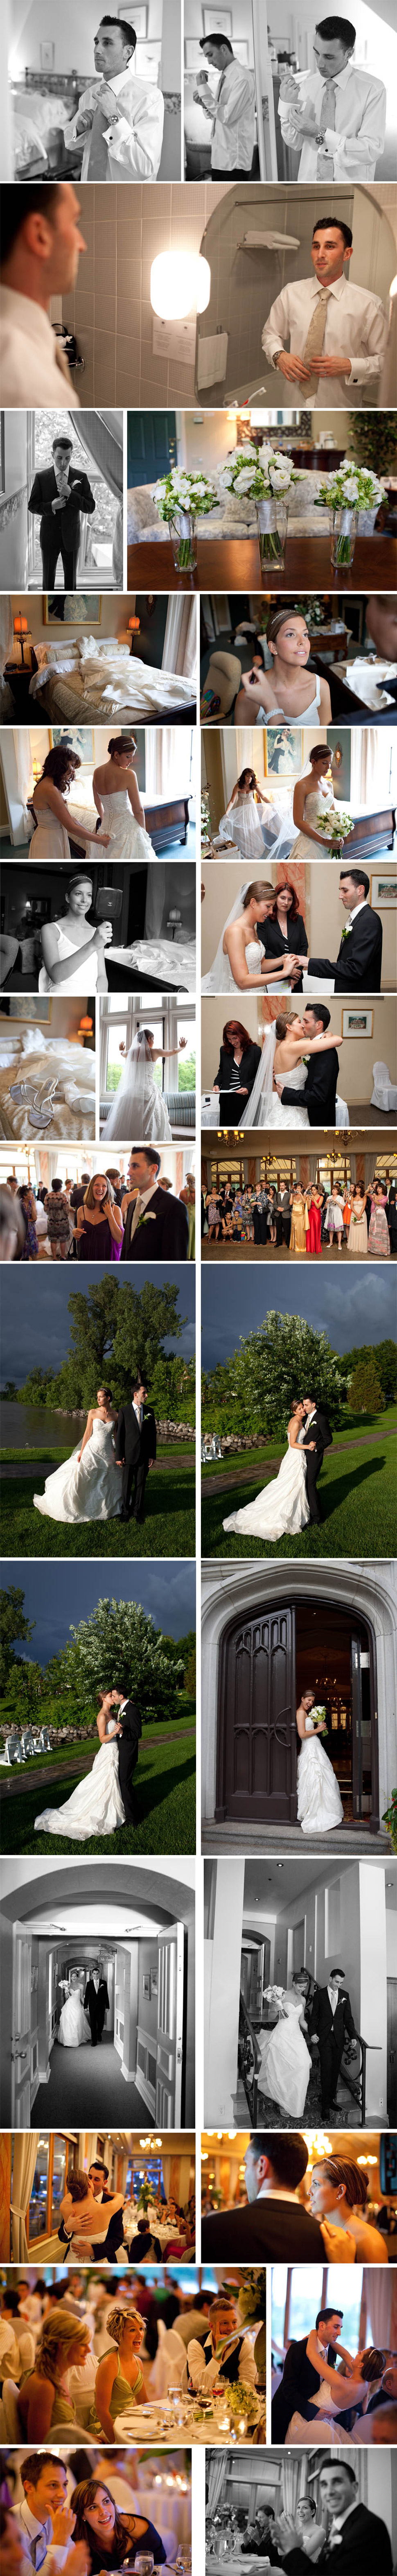 Awesome wedding pictures with dramatic sky.